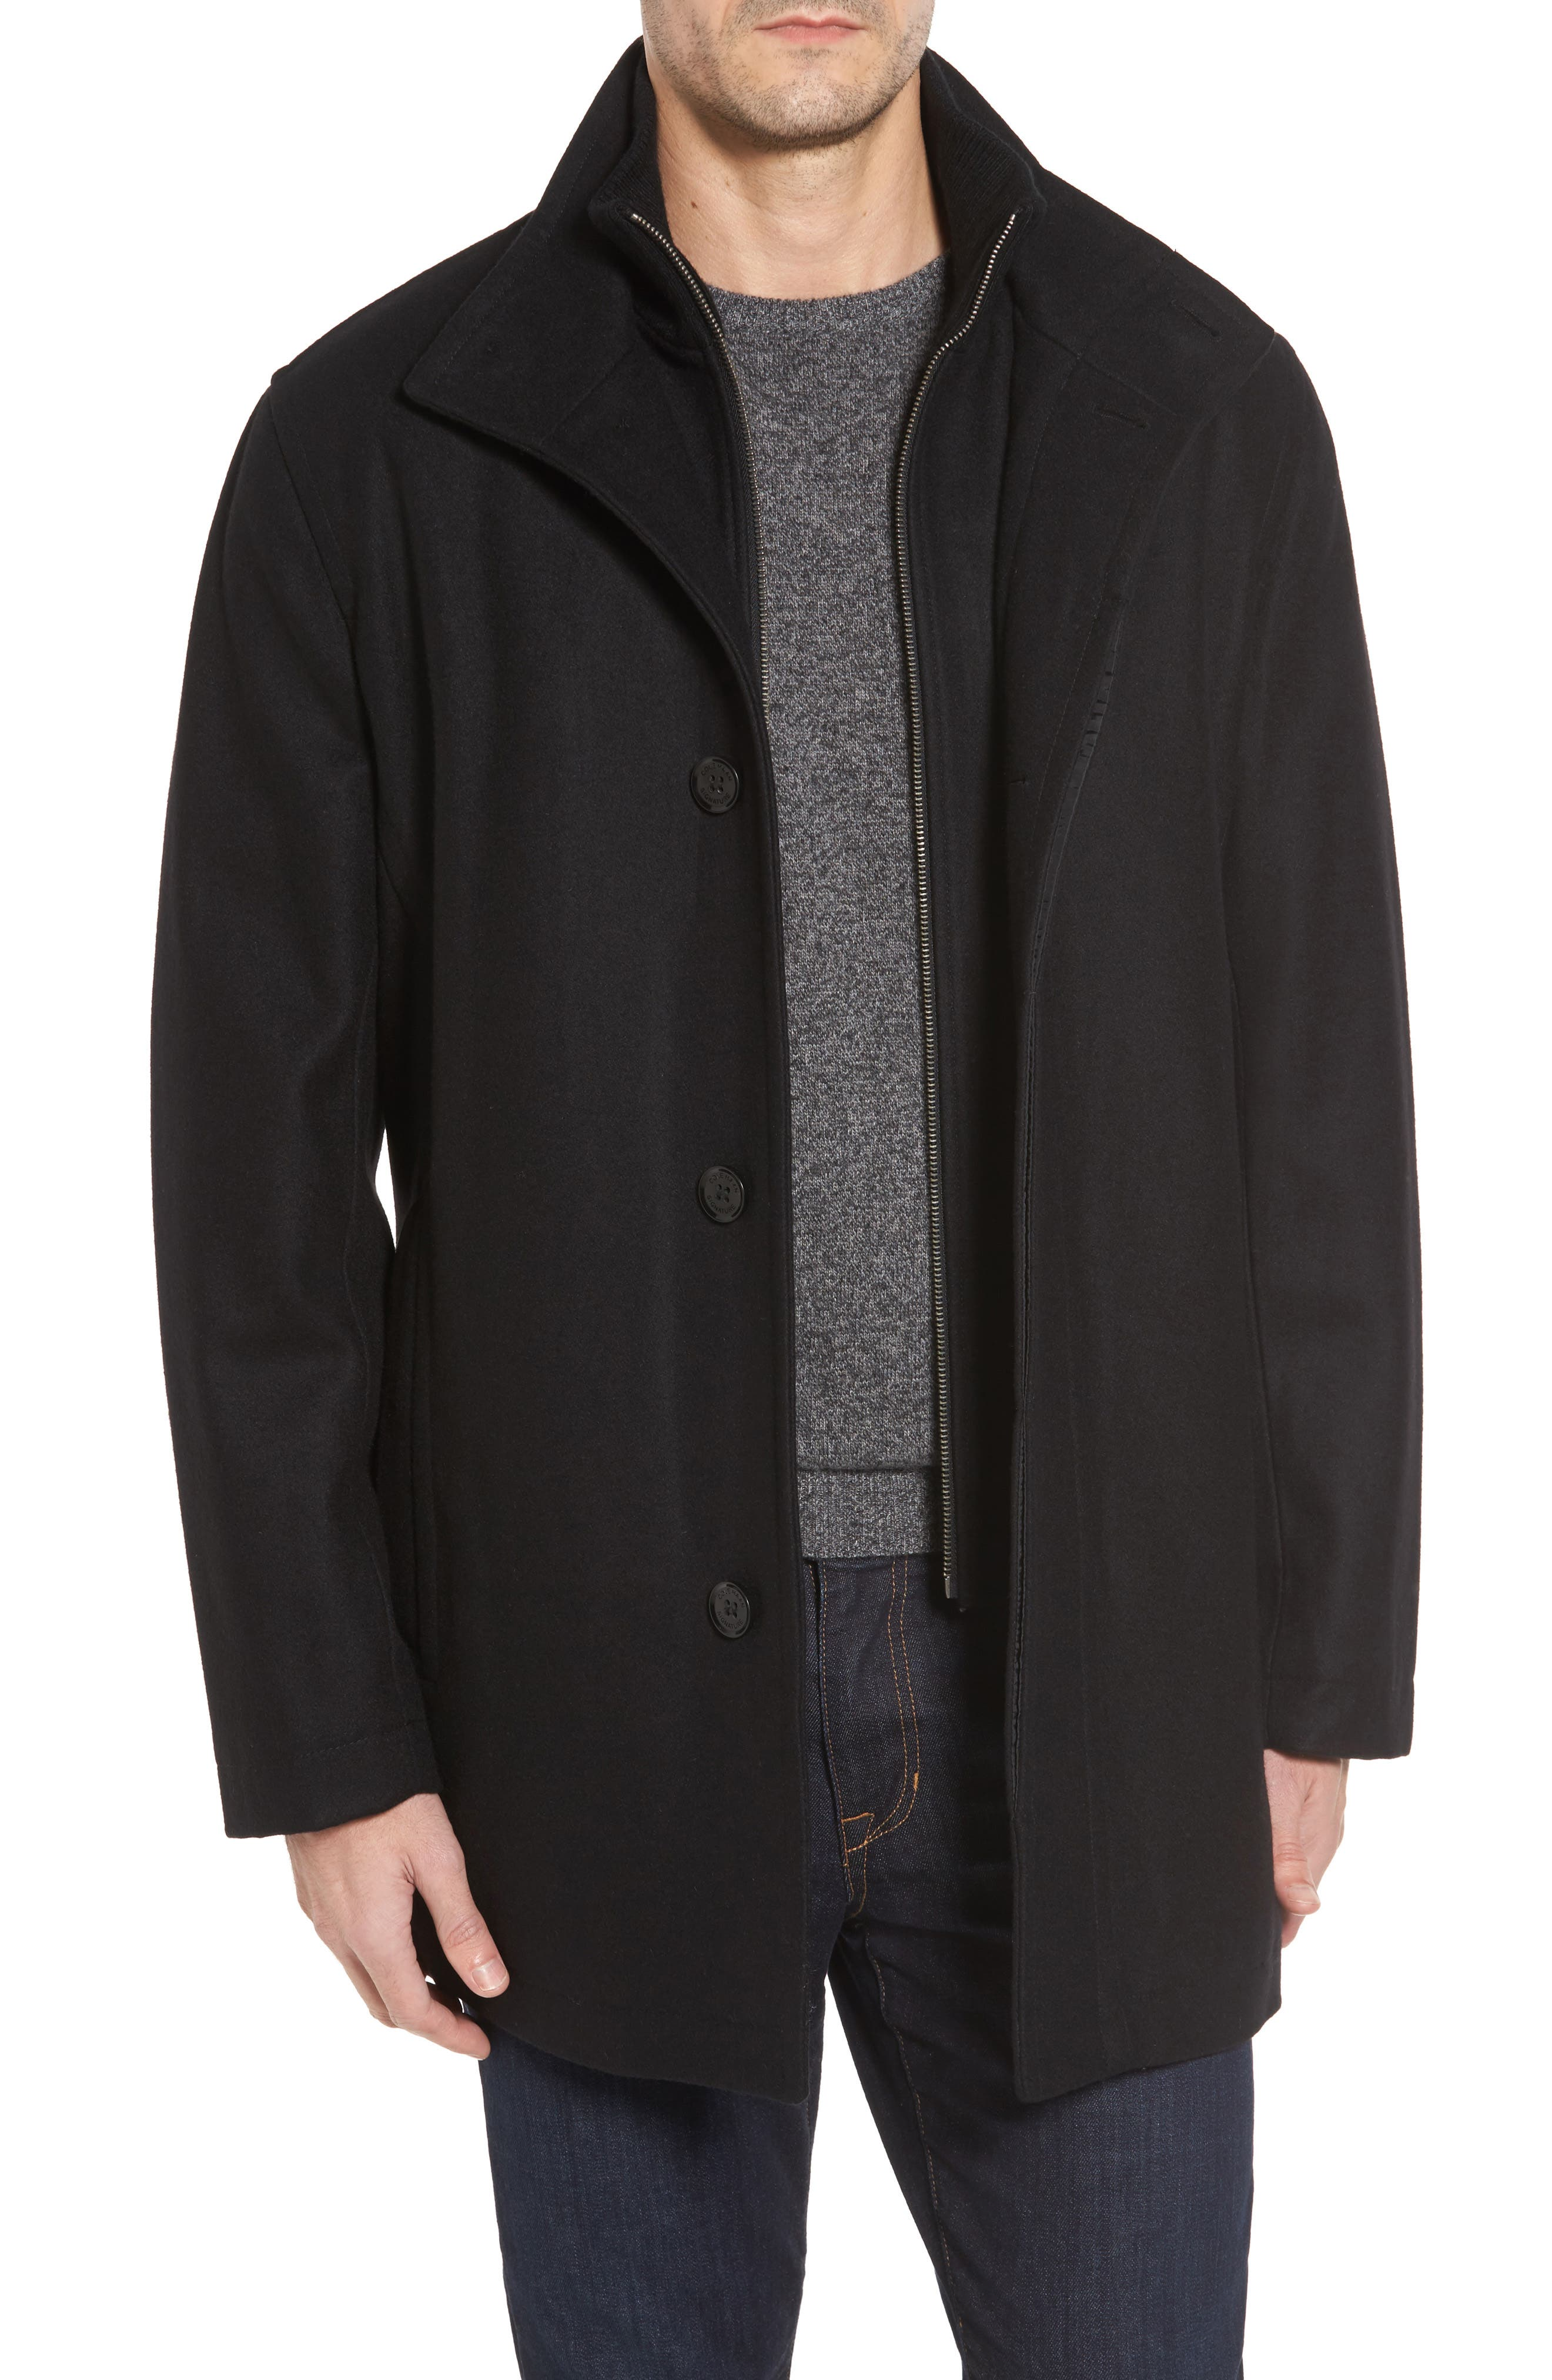 Melton Wool Blend Coat,                             Main thumbnail 1, color,                             BLACK